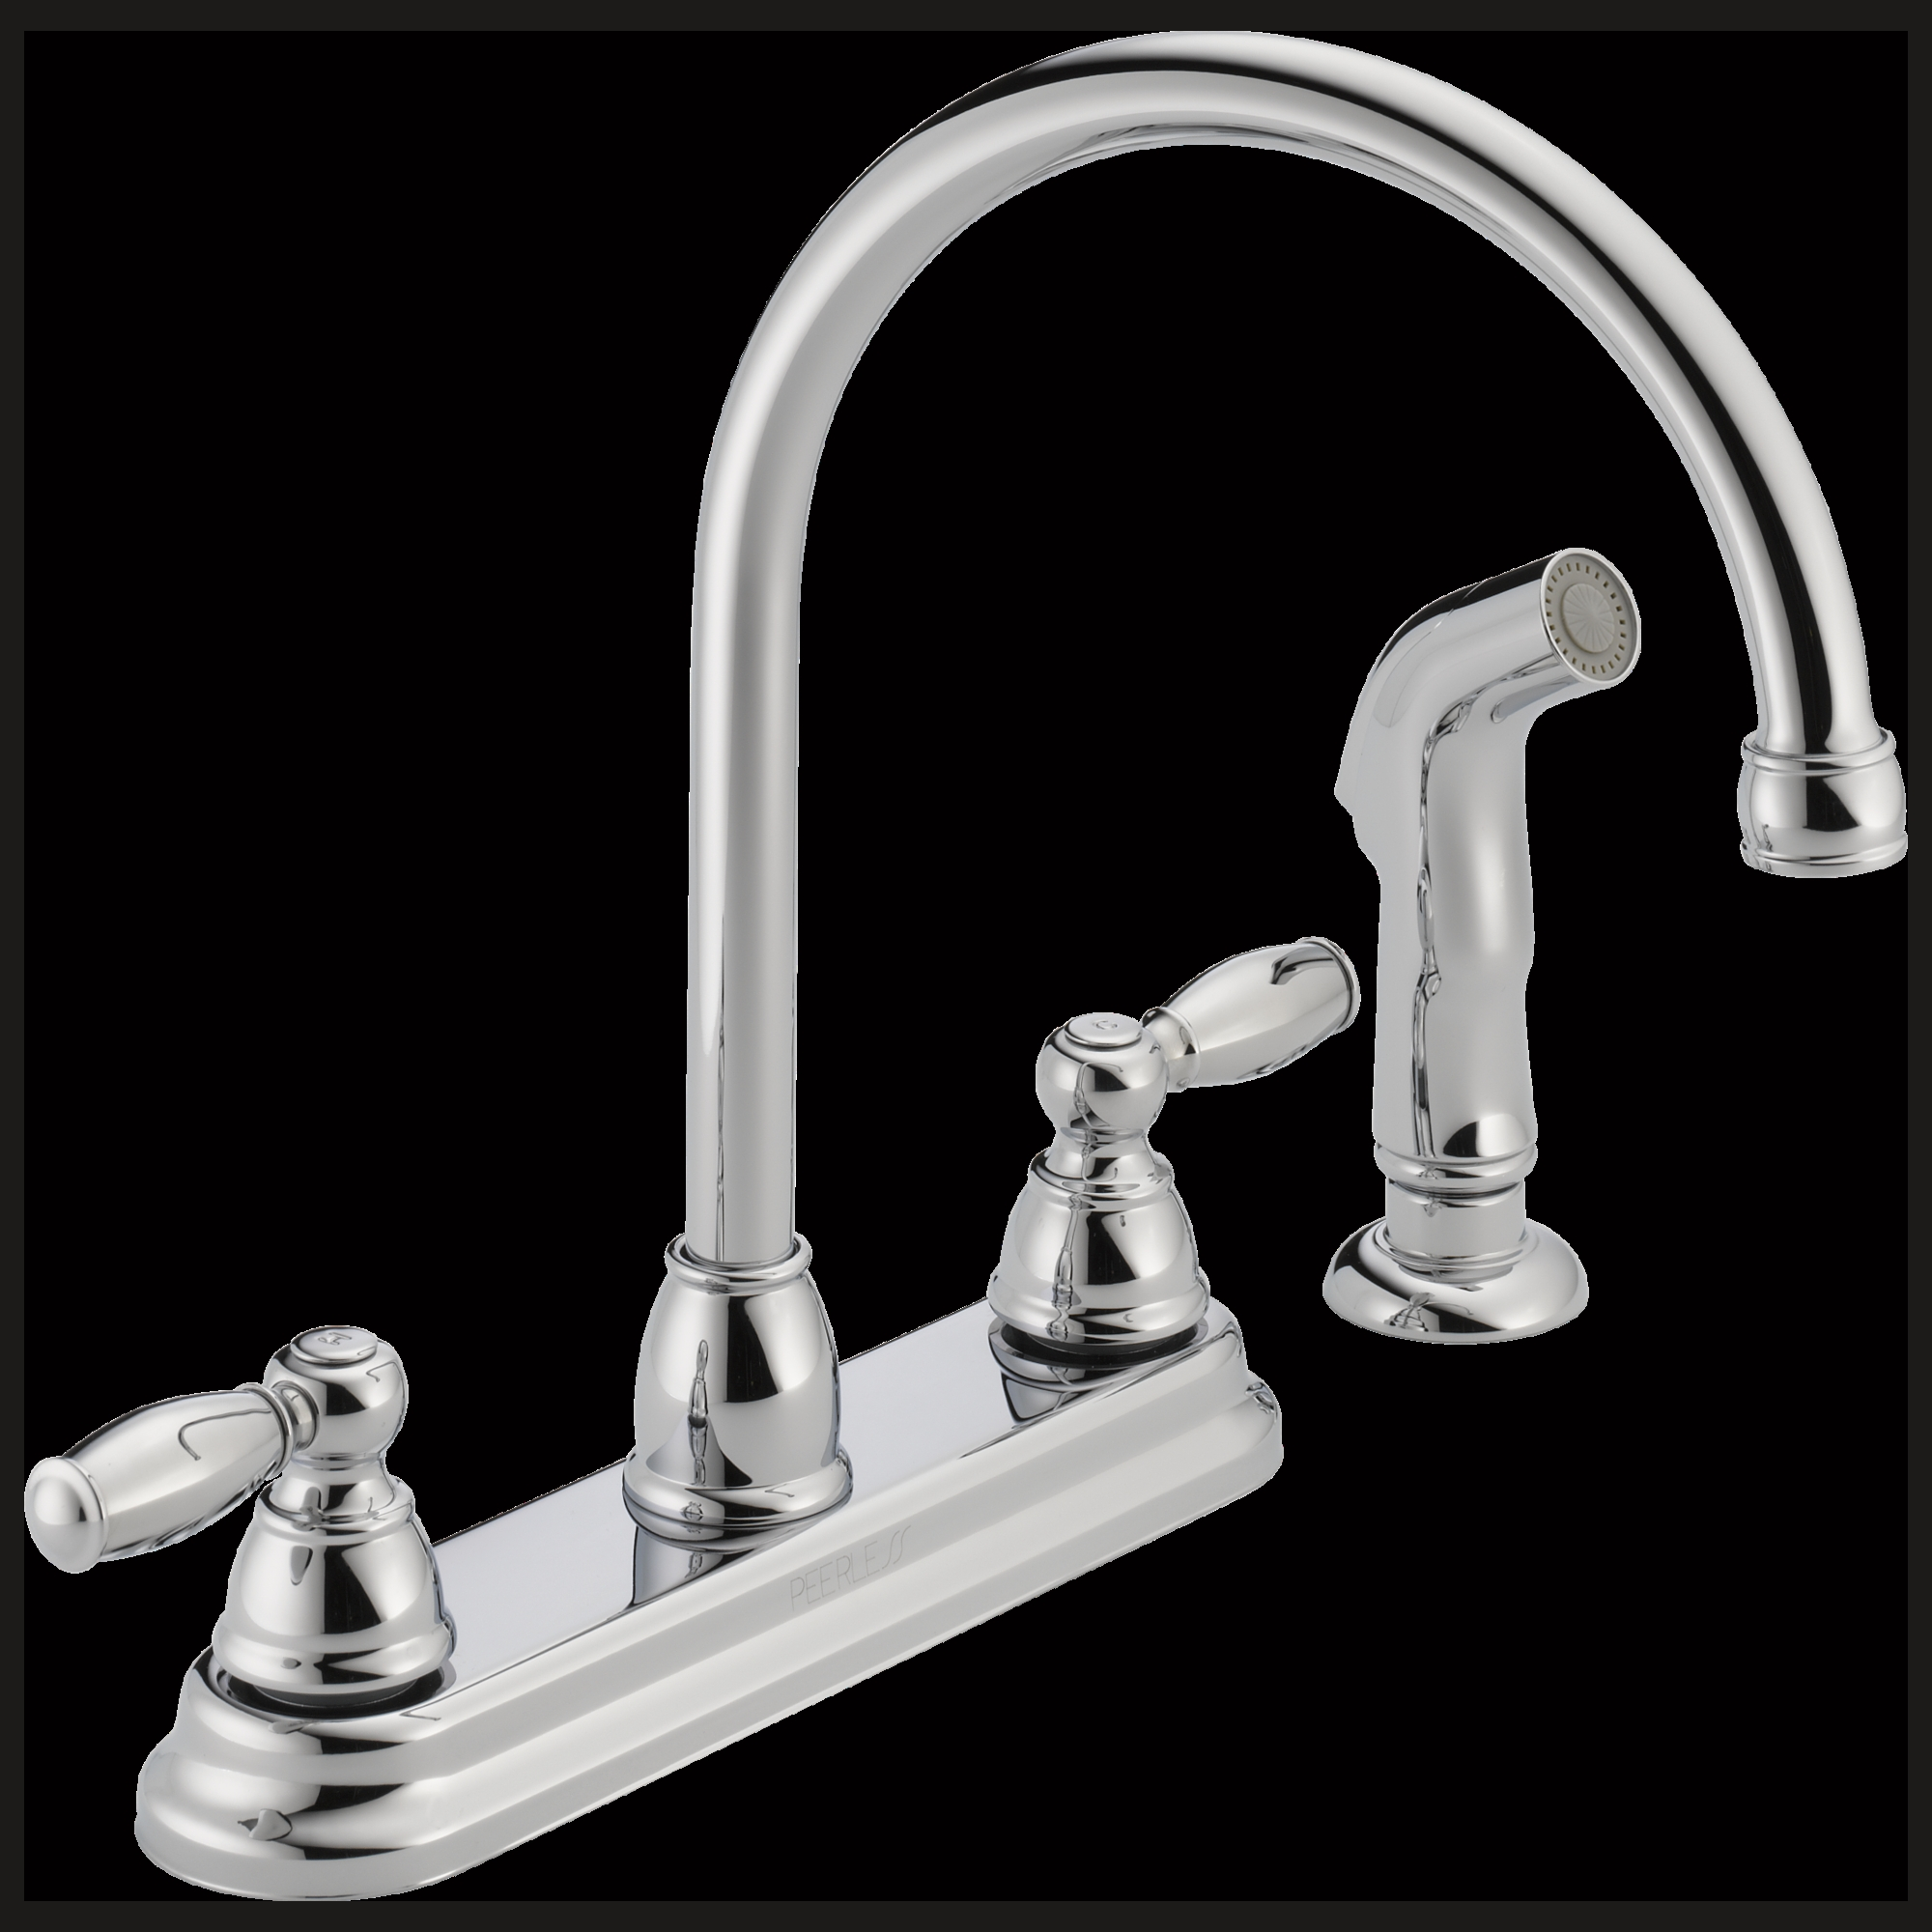 Ideas, interior dripping kitchen faucet fix a dripping faucet pertaining to dimensions 2000 x 2000  .